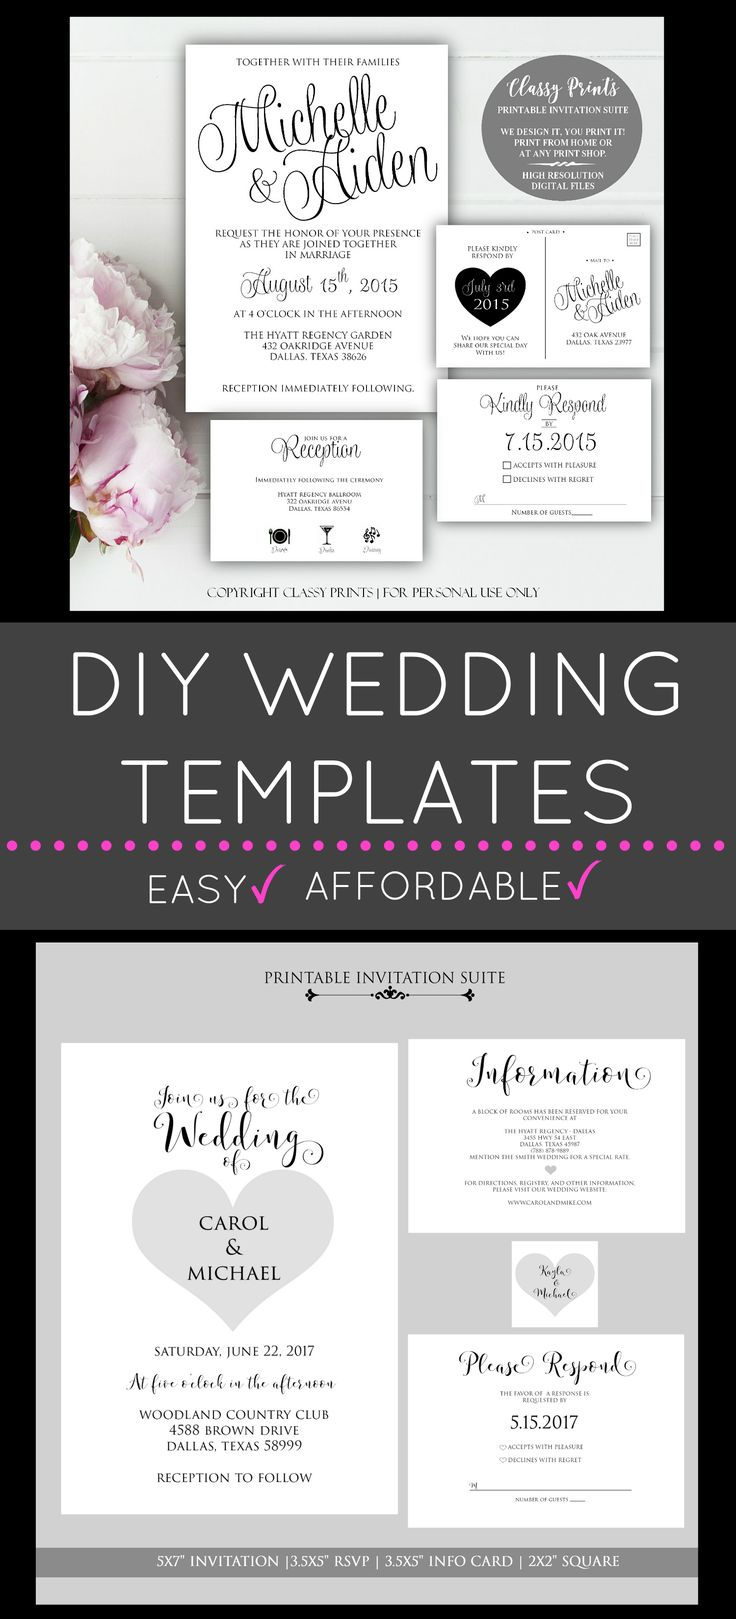 best ideas about invitation templates diy diy wedding invitations printable wedding invitations wedding invitation templates more